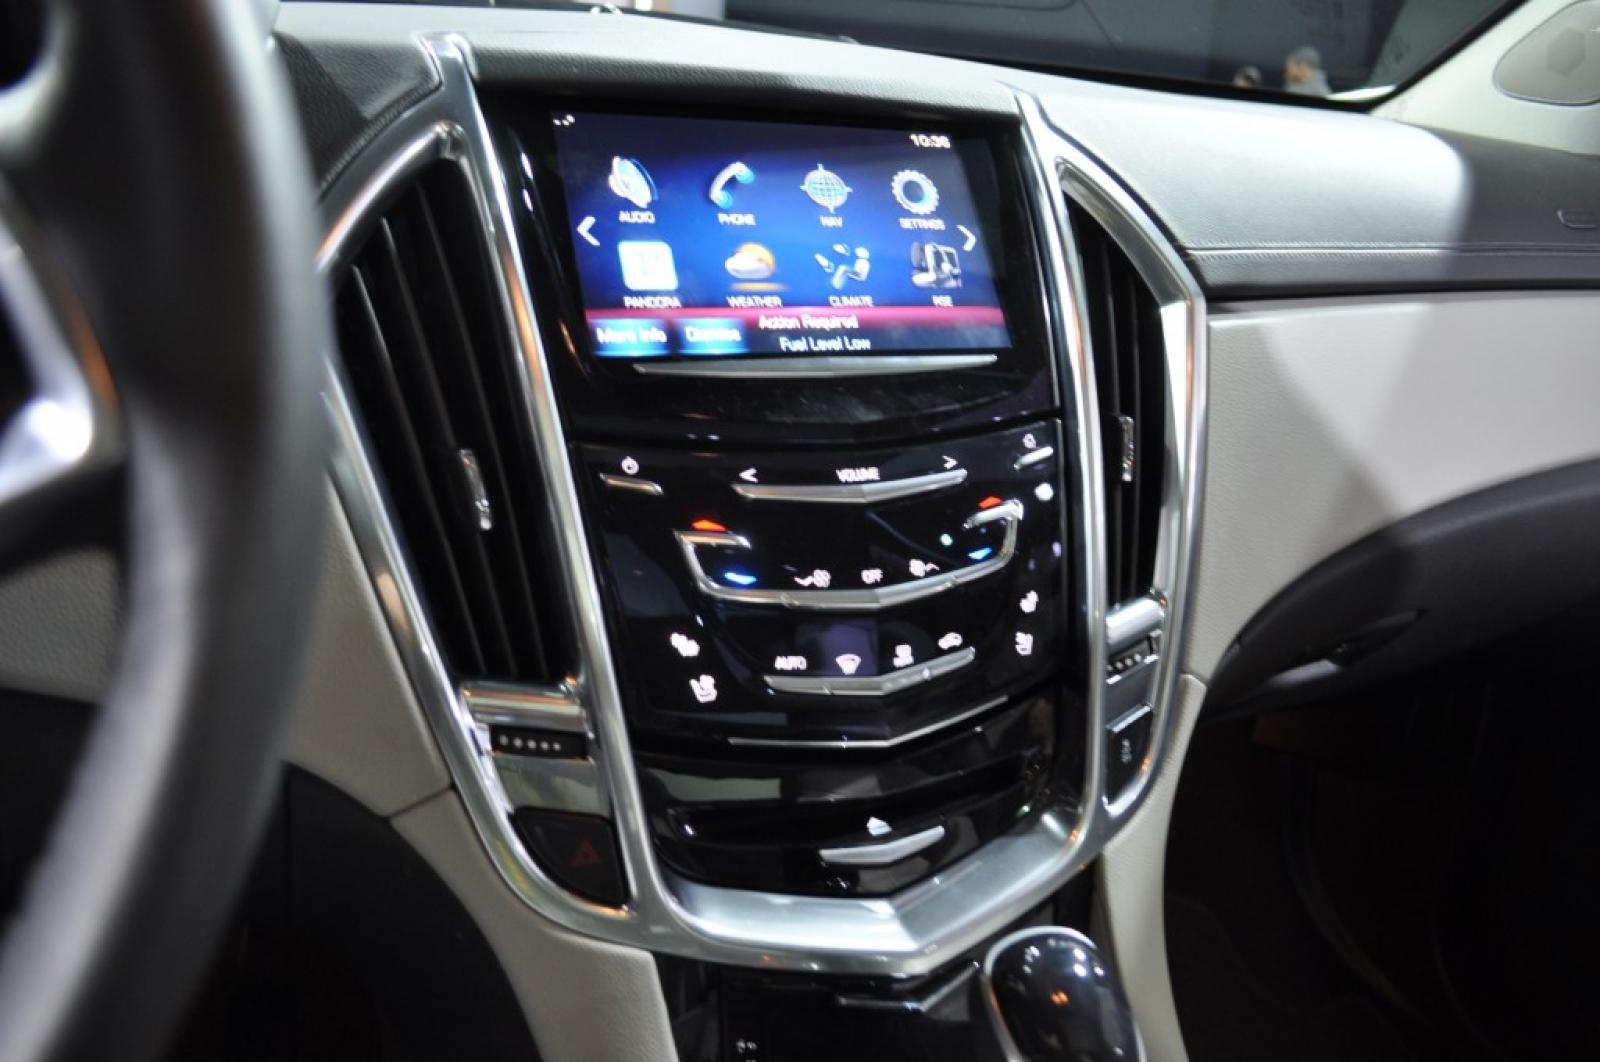 srx loaded cam low pano cadillac miles used nav back up roof detail bose